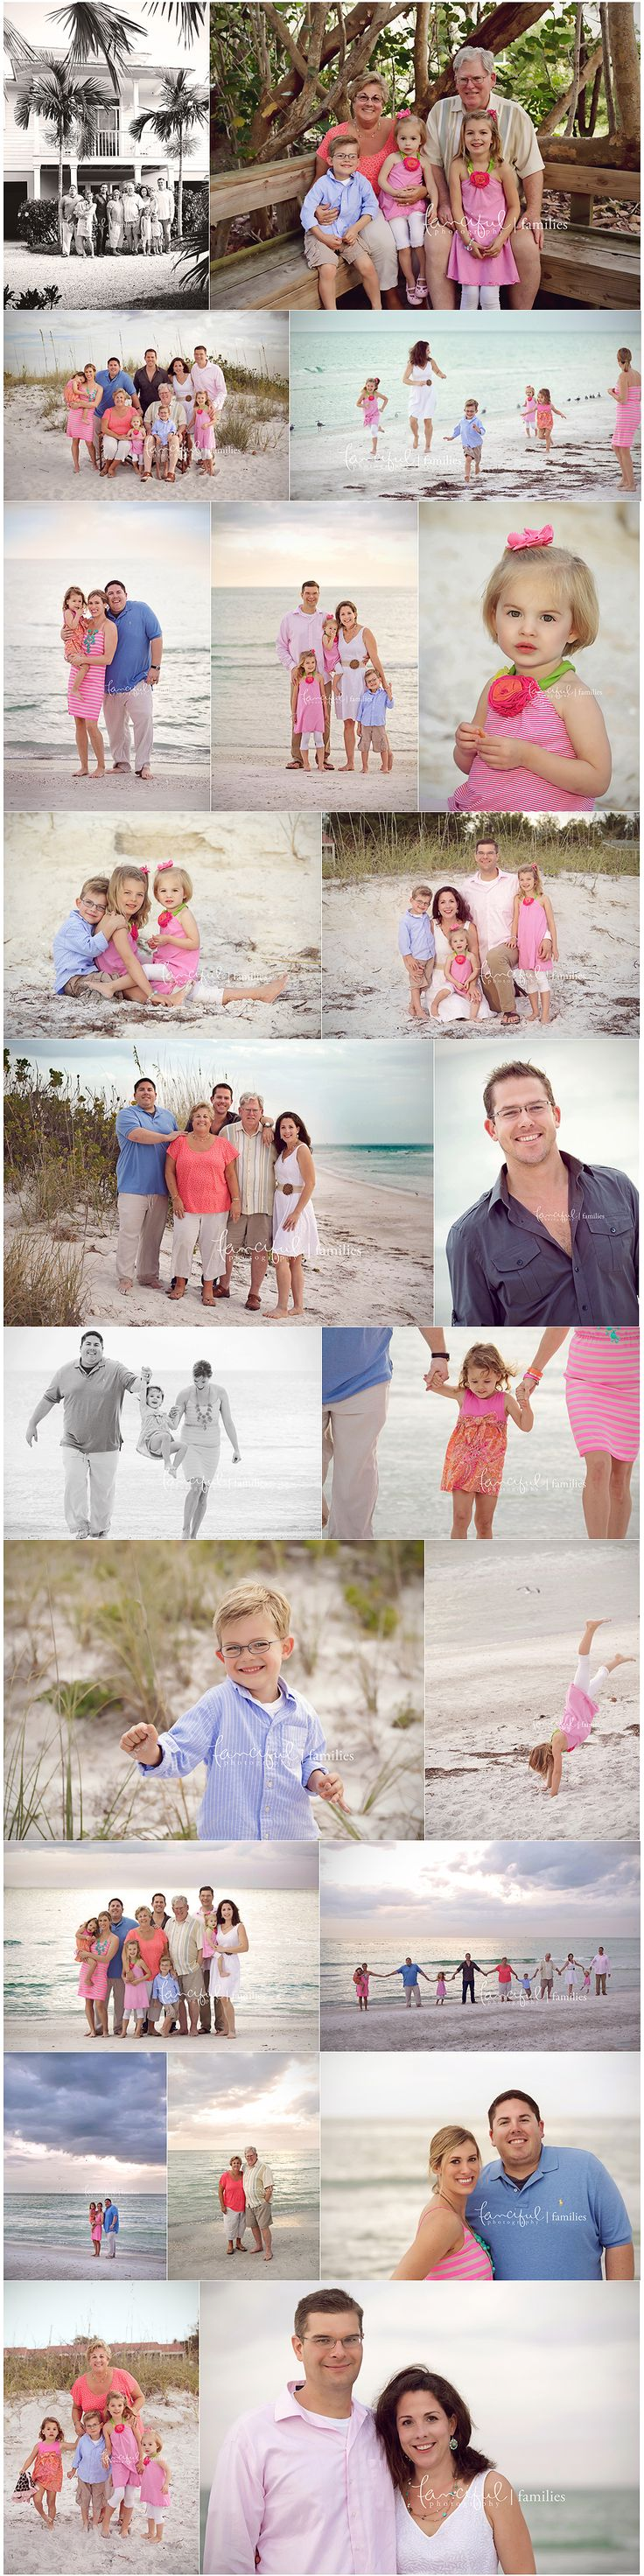 Pinks look pretty at the beach.  All denim and white with some pink or other bright color?